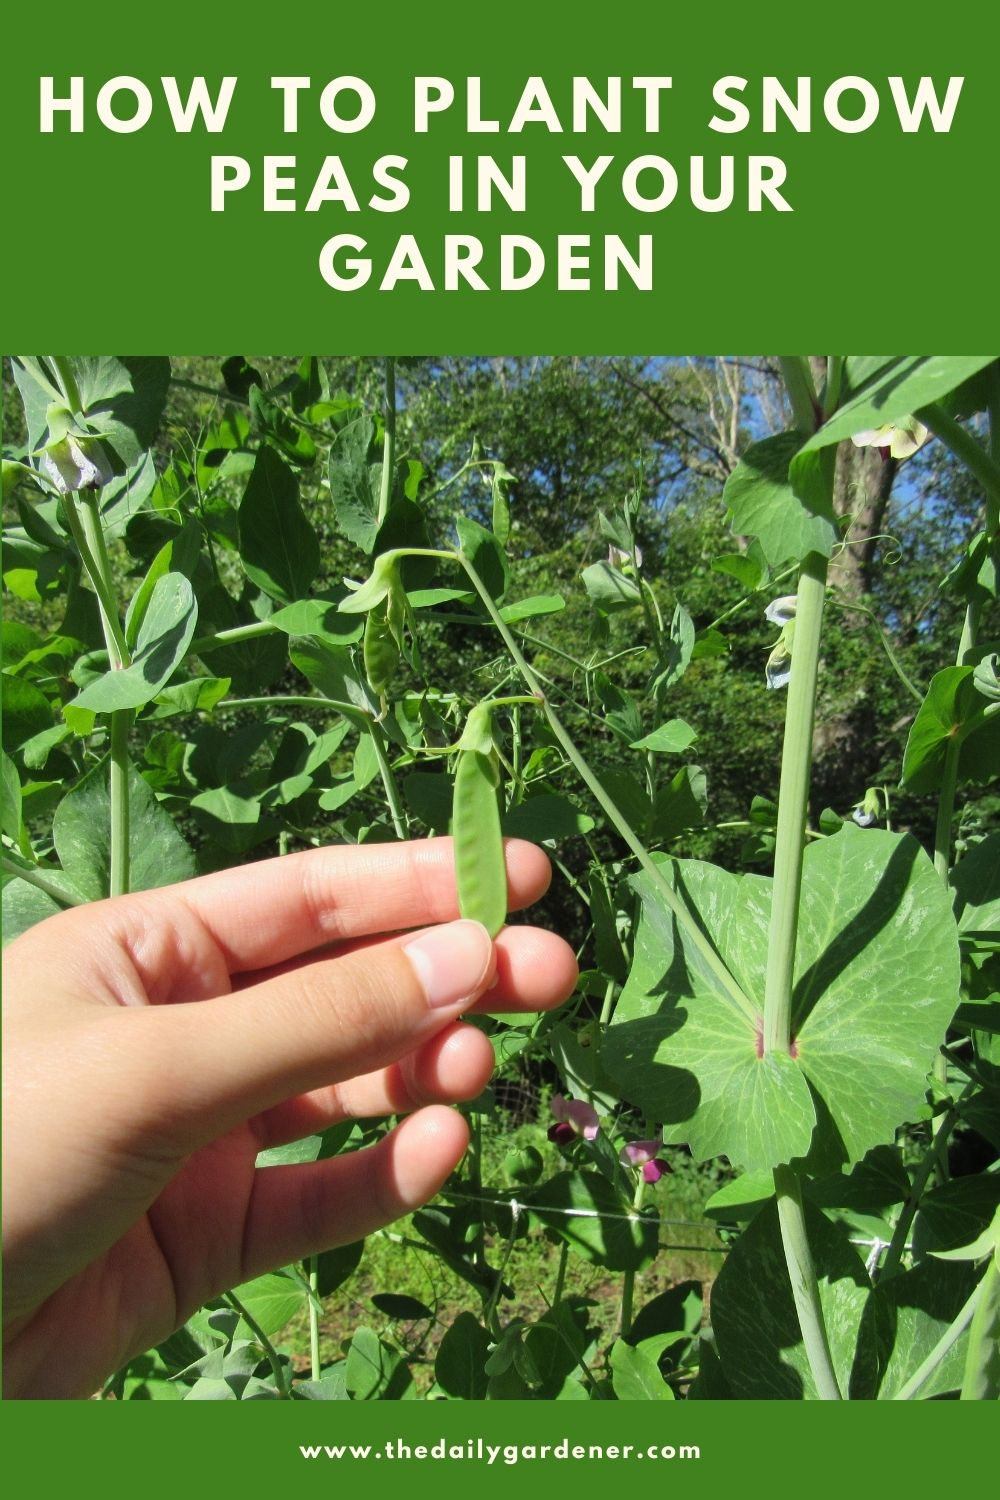 How to Plant Snow Peas in Your Garden 2